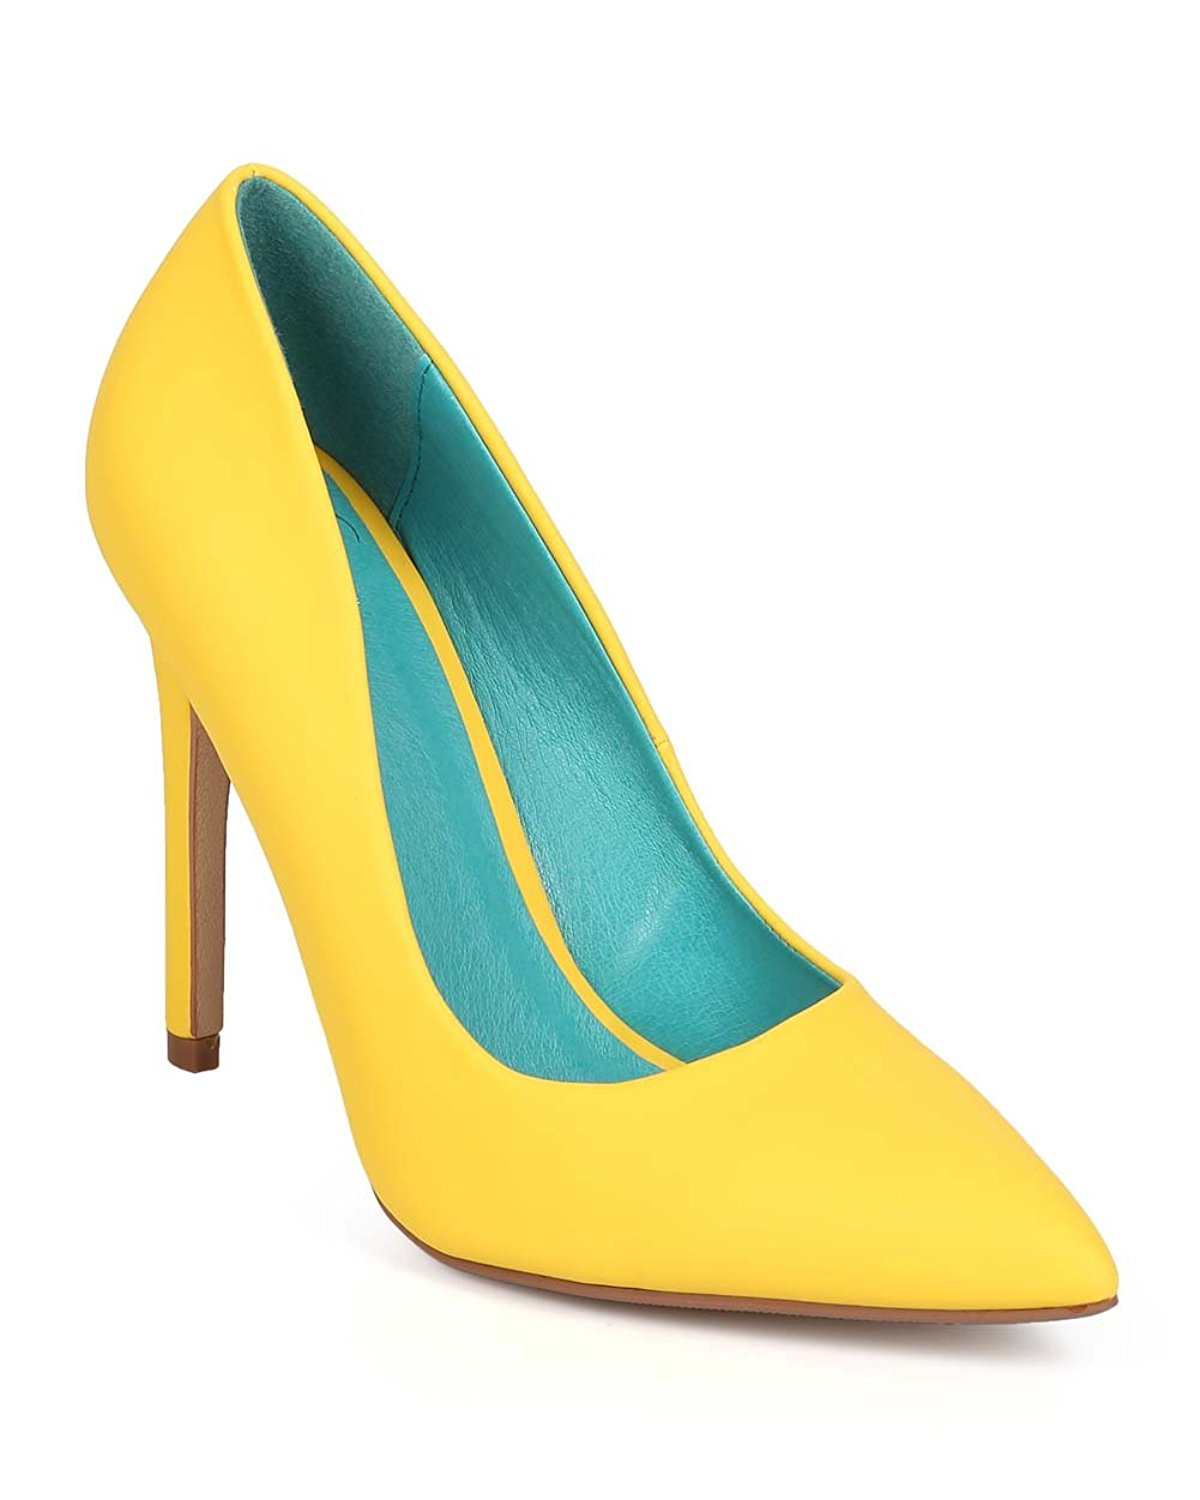 1e74602eefc5 Get Quotations · Fouever Funky Yellow Cindy by Not Just A Pump Classic  Pointy Toe Heels Women s Shoes